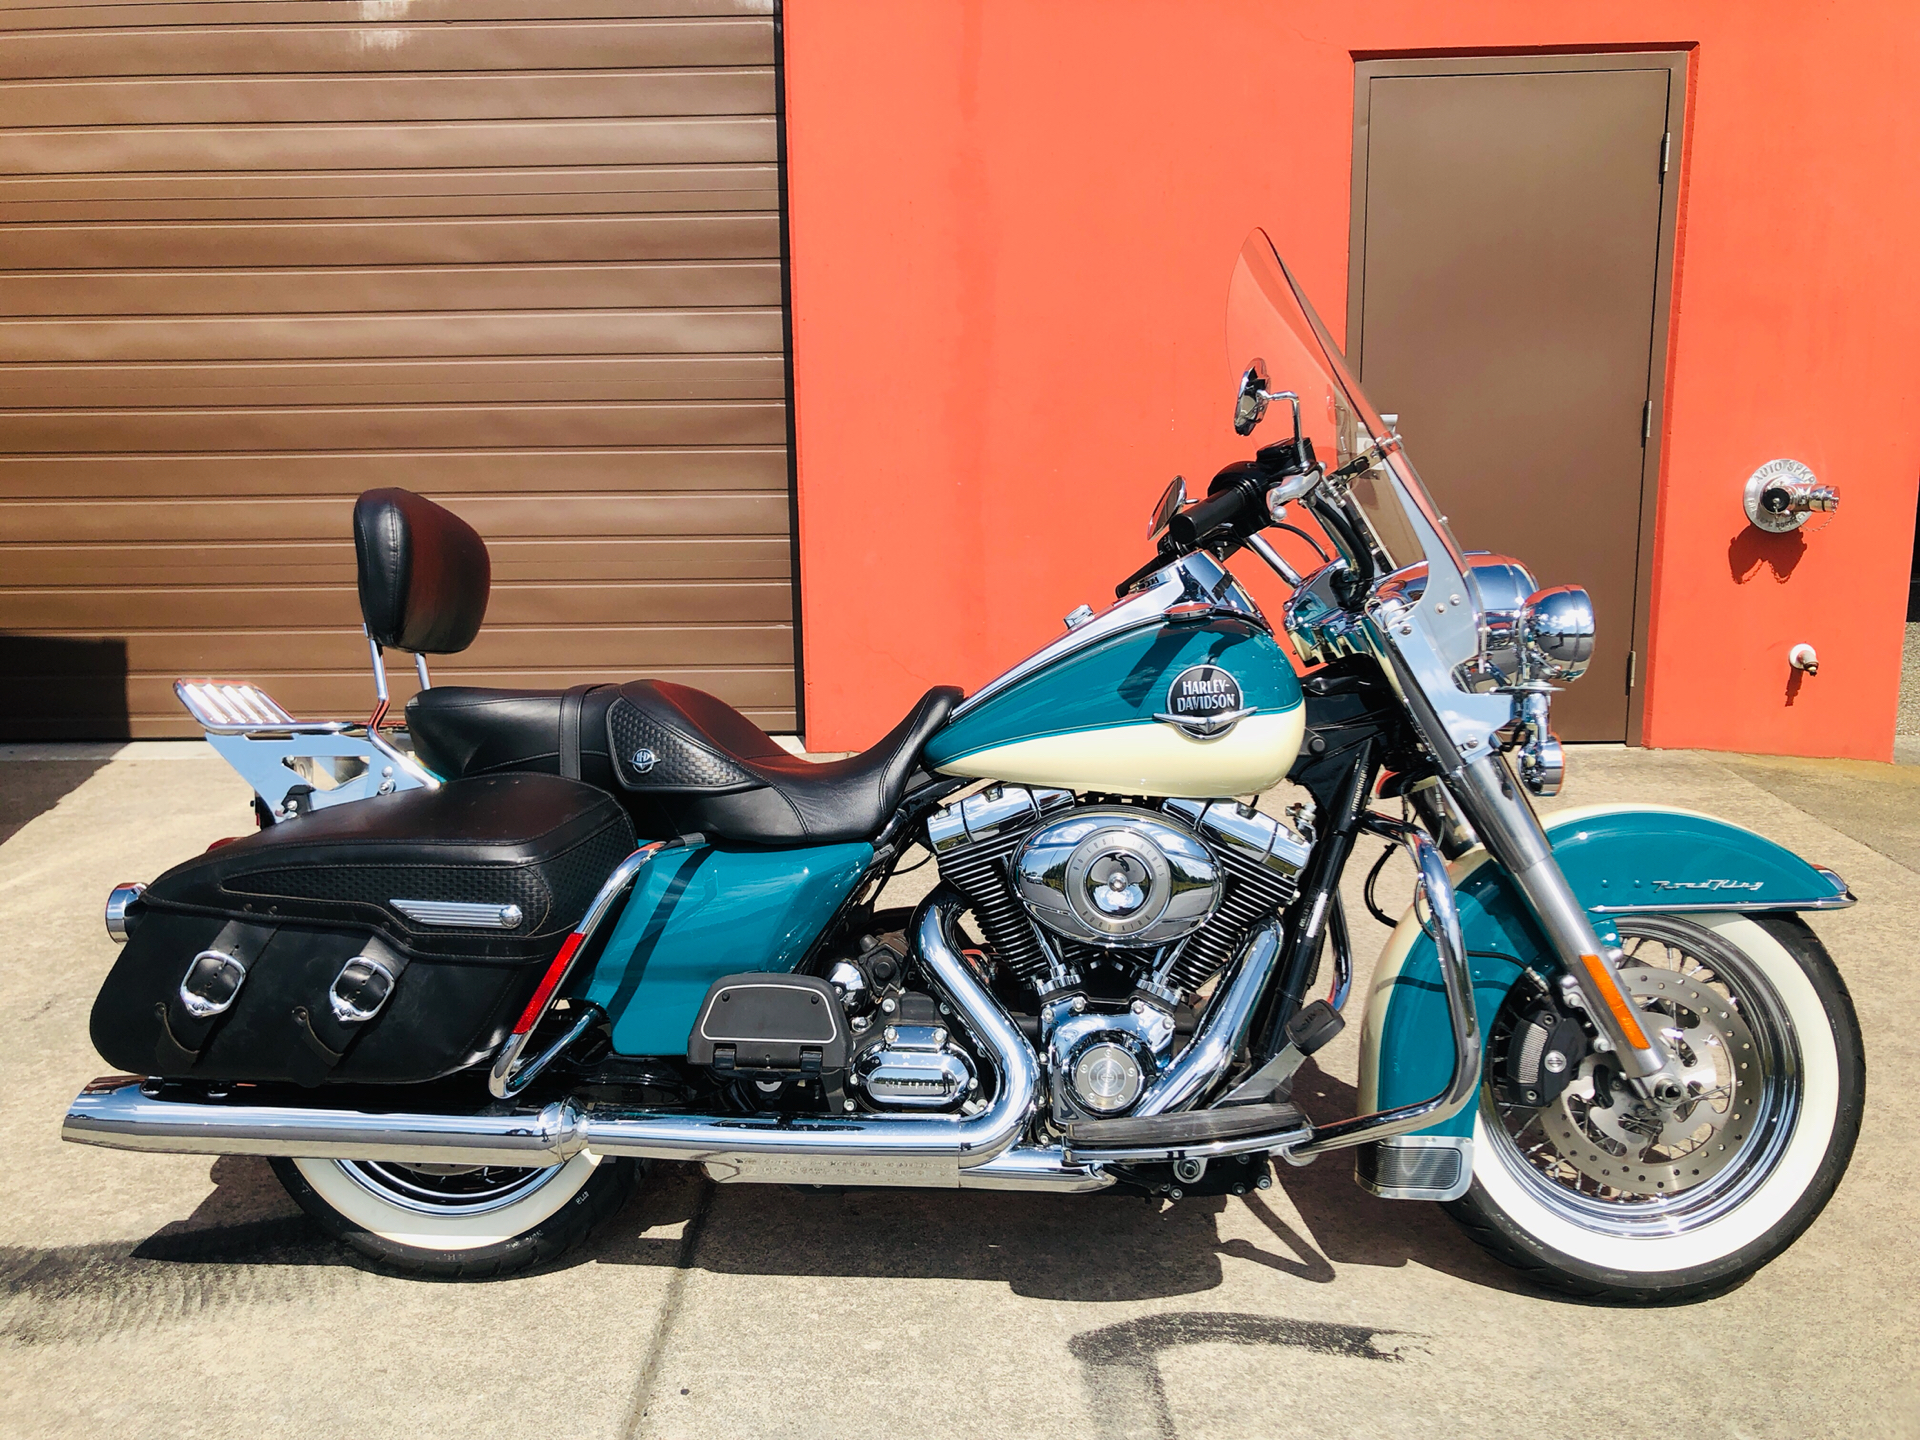 2009 Harley-Davidson Road King® Classic in Burlington, Washington - Photo 1